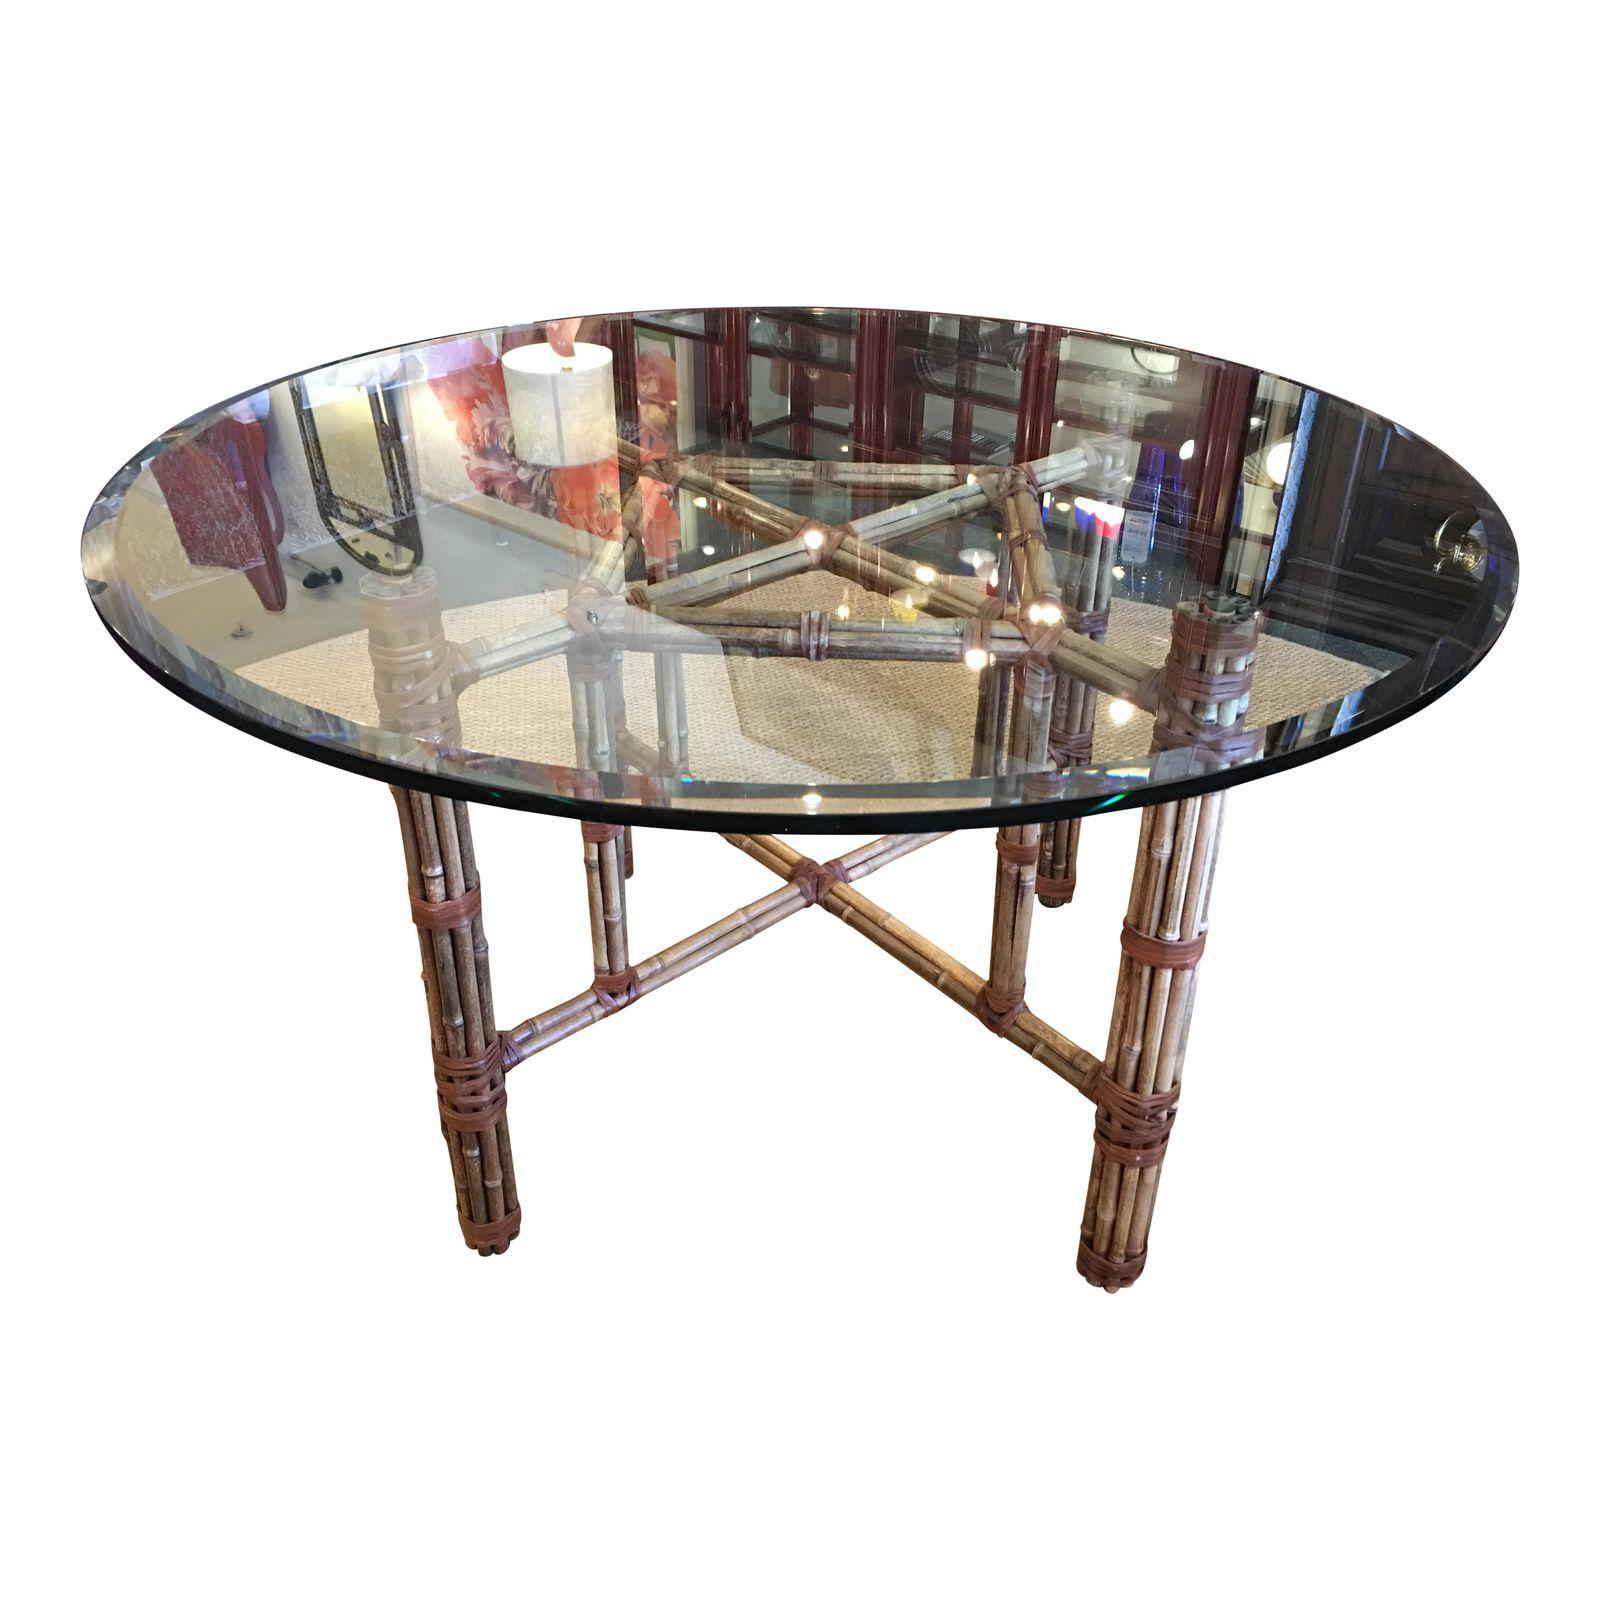 Bamboo Table With Design: McGuire Bamboo Base Dining Table